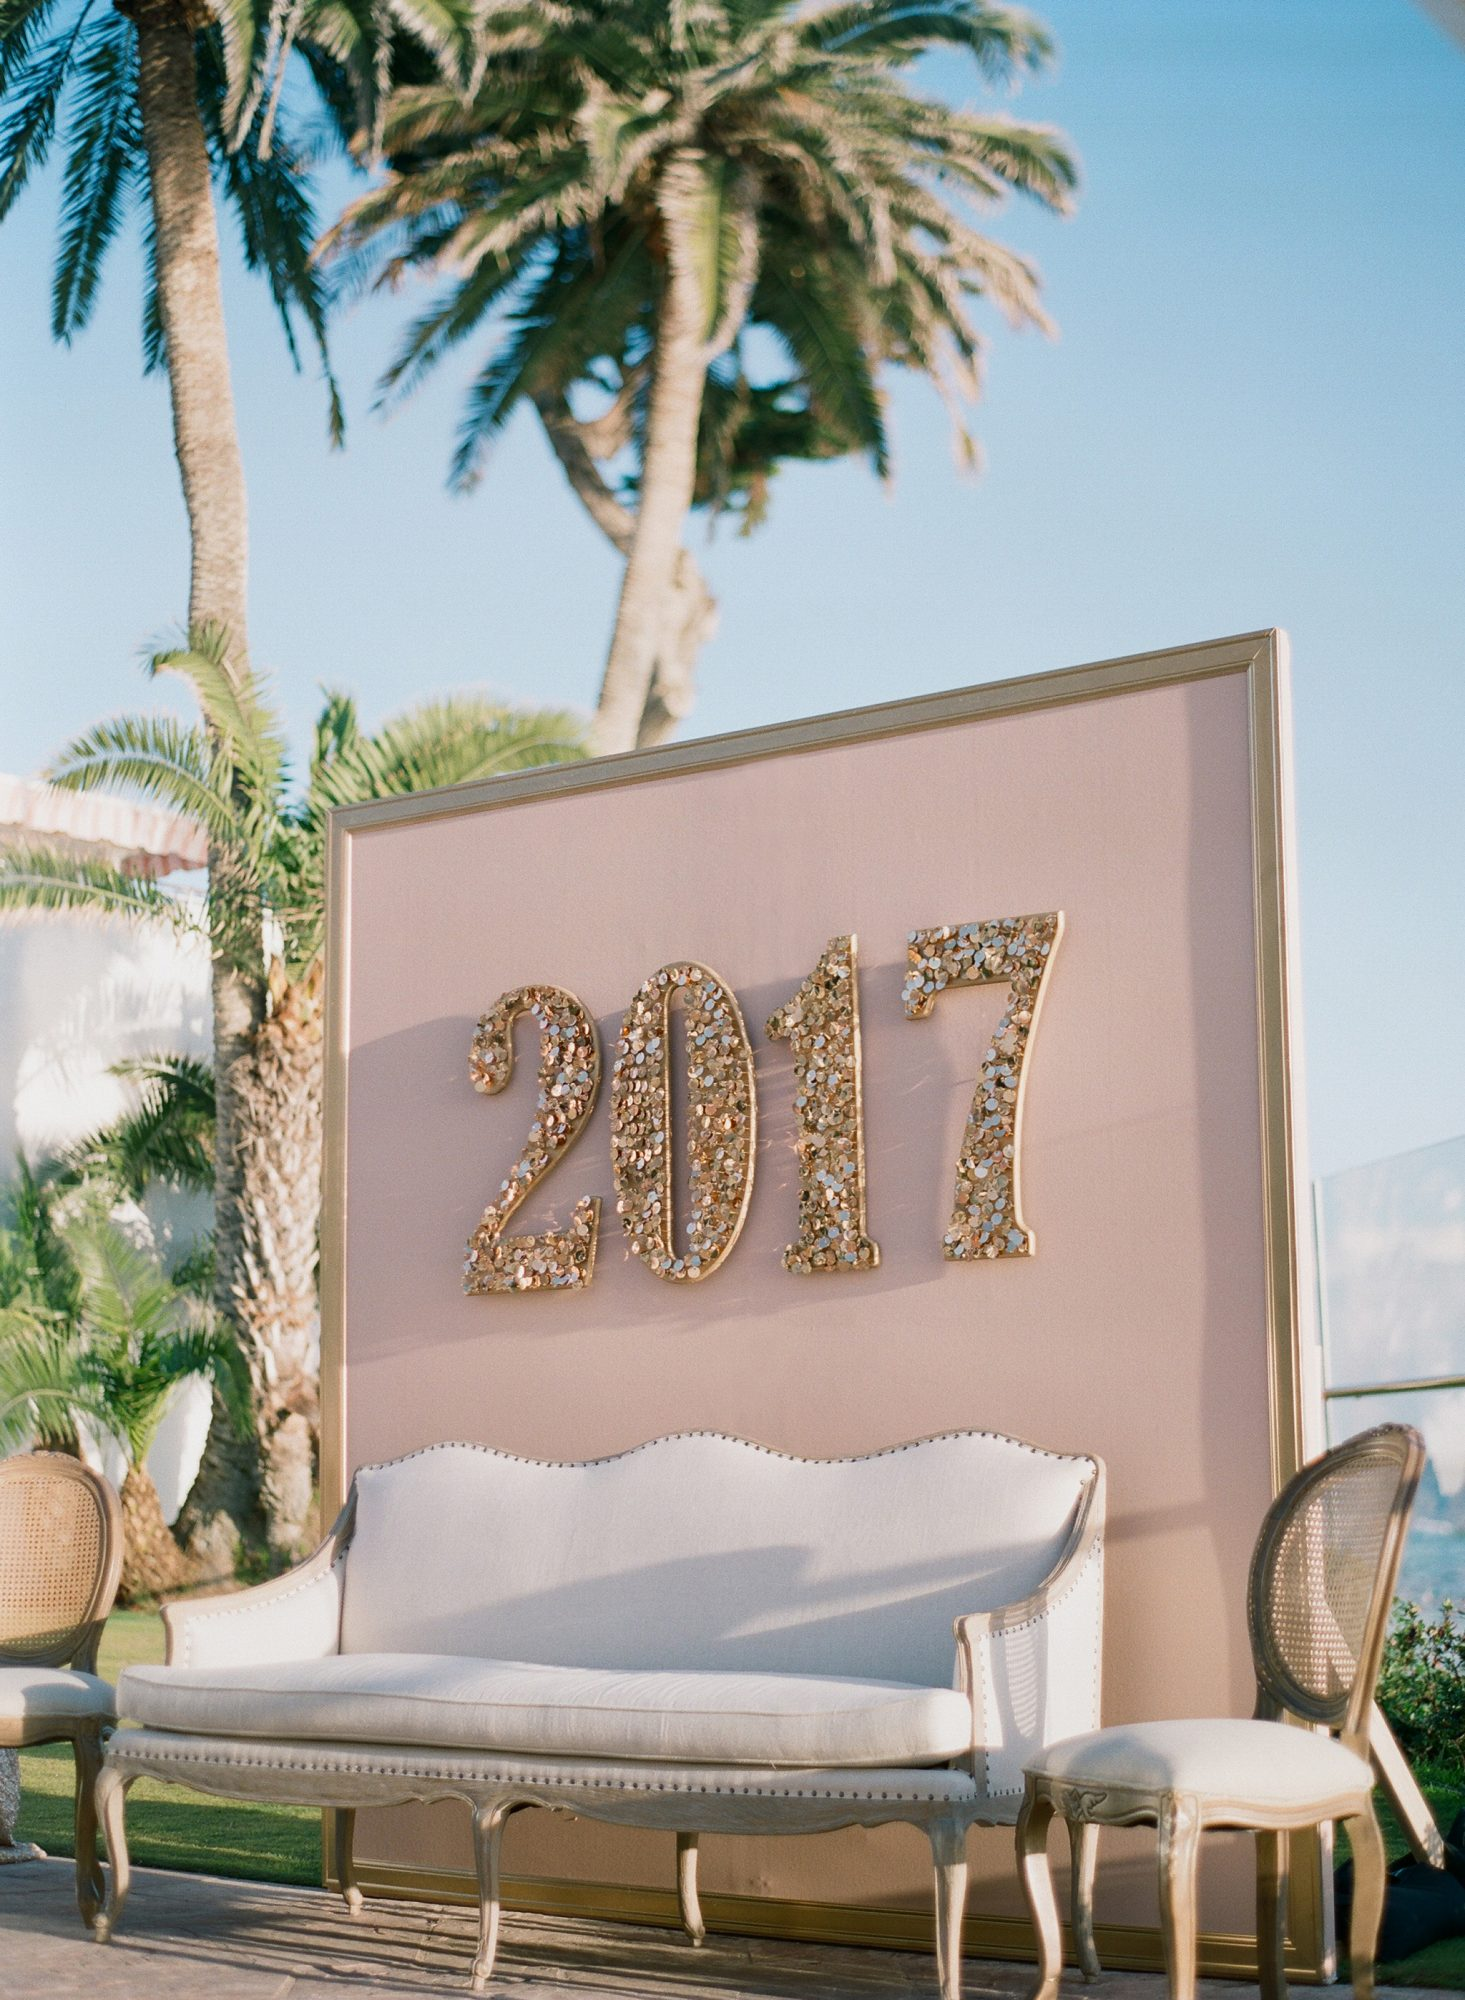 Honor the upcoming year in a big way, like this couple did at their New Year's Eve wedding. Decorate your lounge area, photo booth, or dance floor with oversized digits.